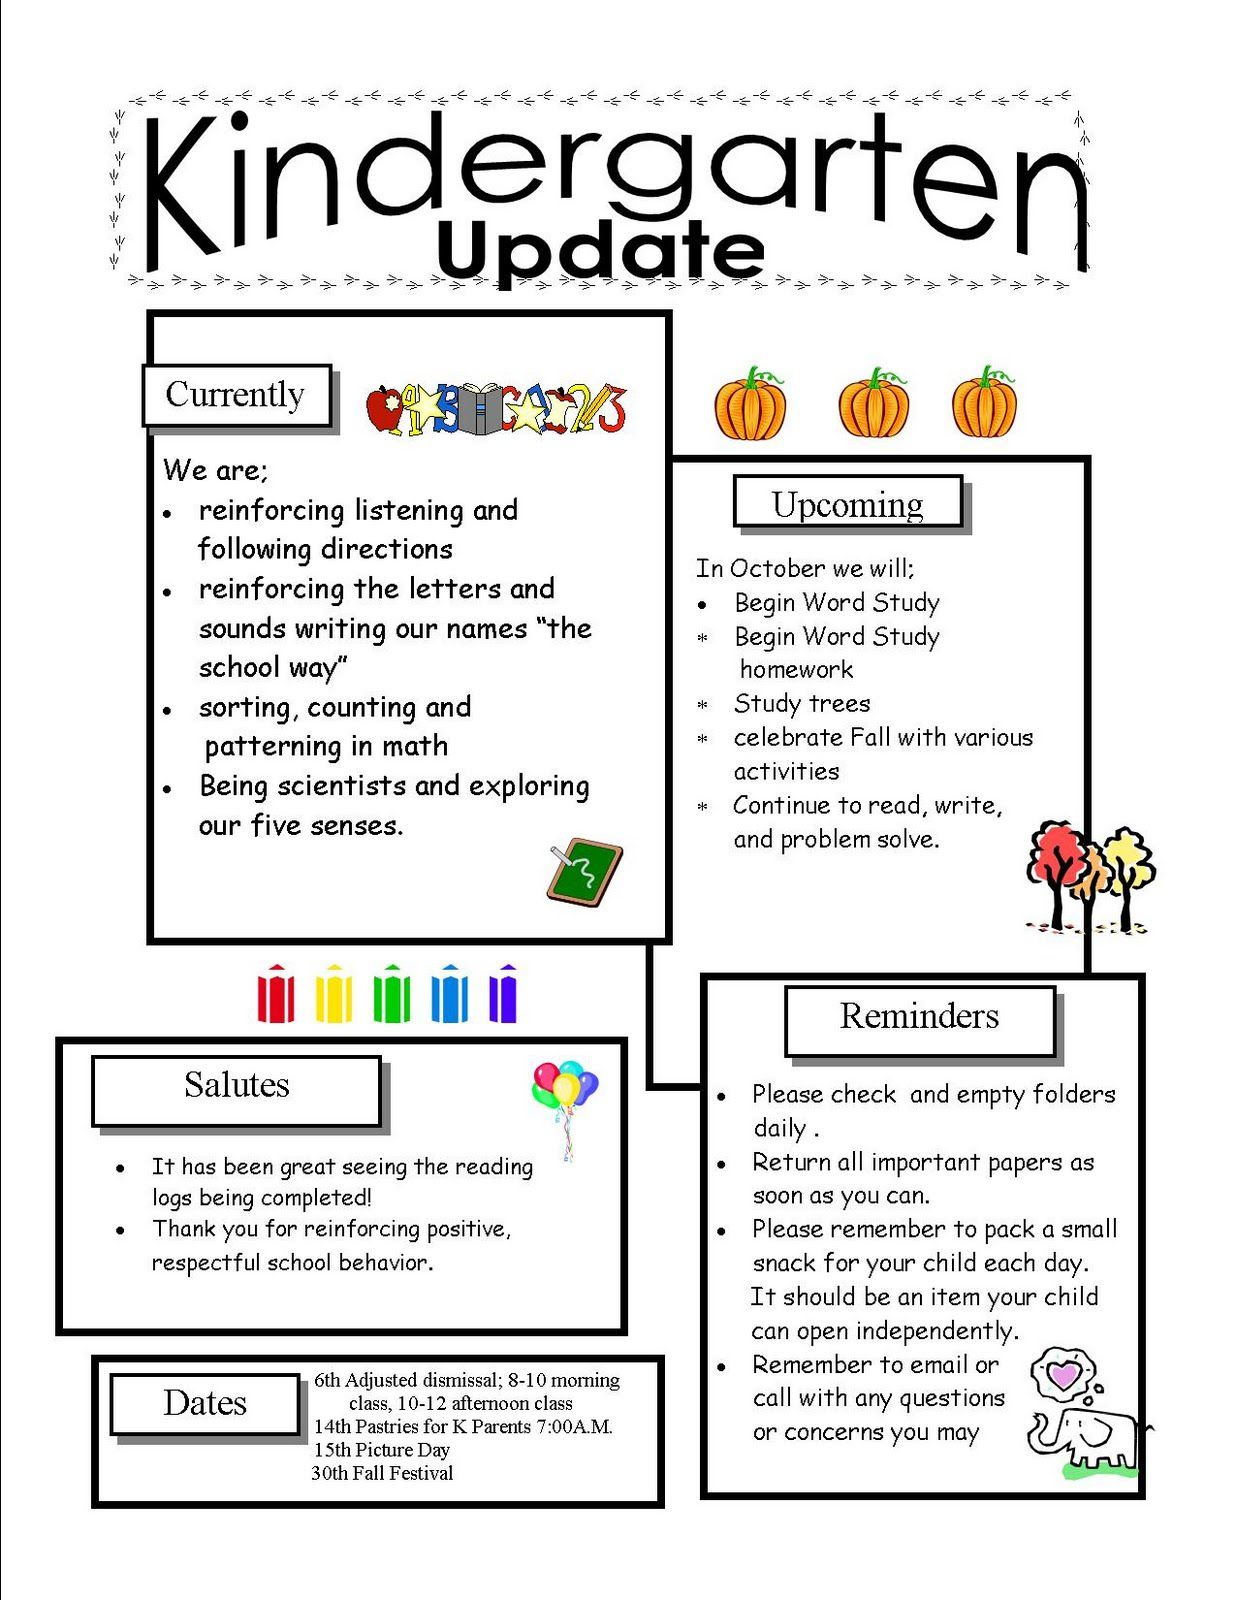 kindergarten newsletter templates for free tuesday september 28 2010 classroom ideas. Black Bedroom Furniture Sets. Home Design Ideas